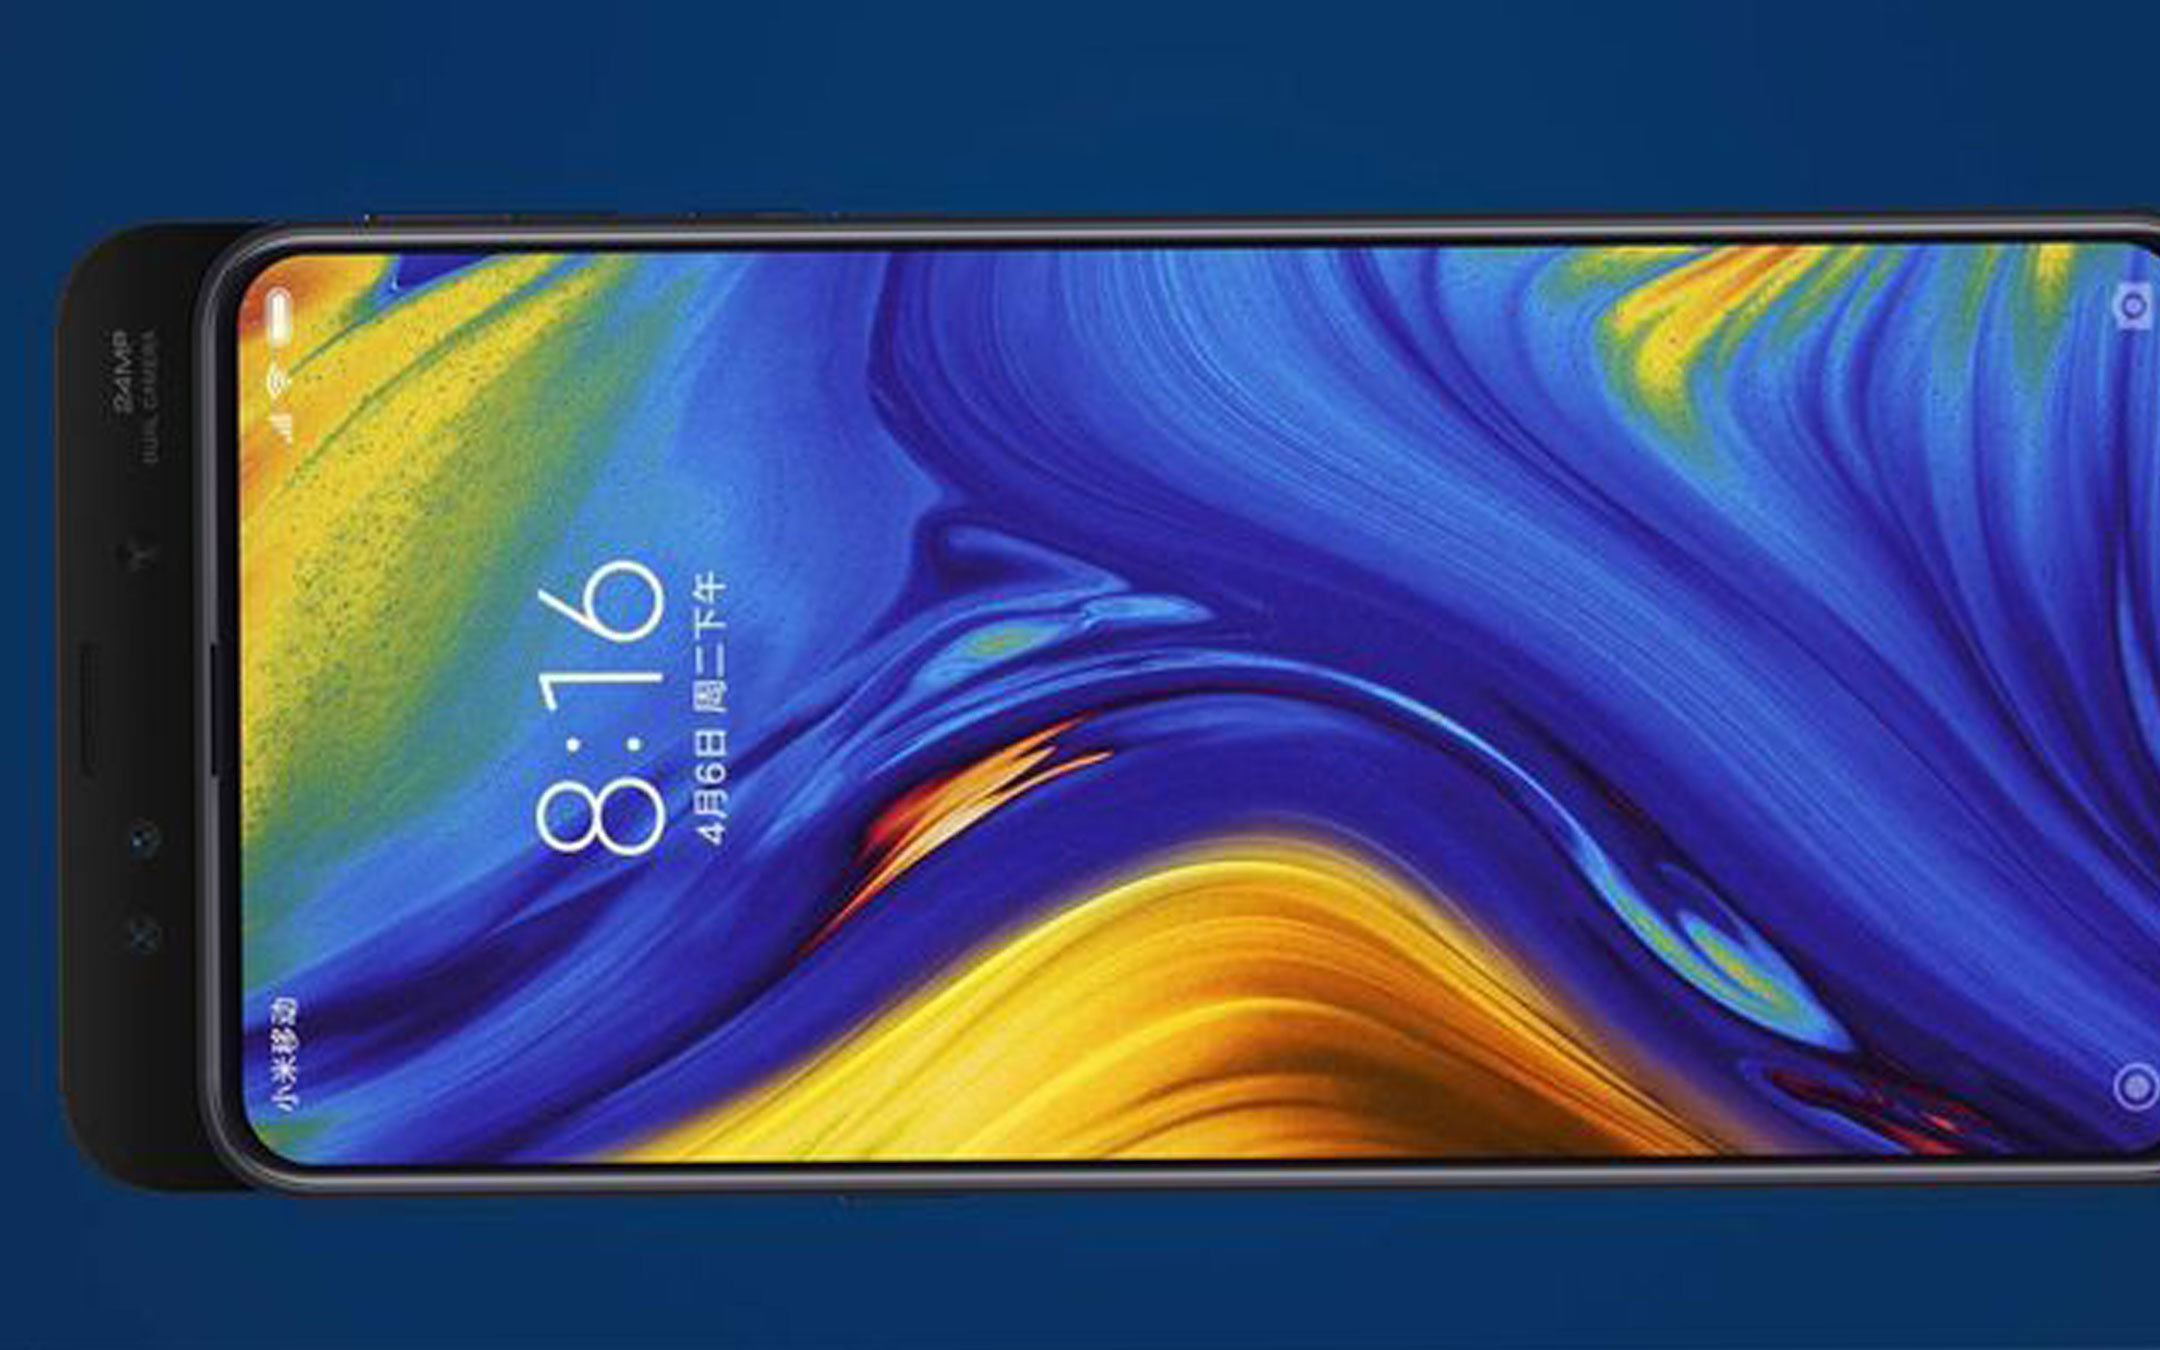 Xiaomi Mi MIX 4: there is a launch date, perhaps 2